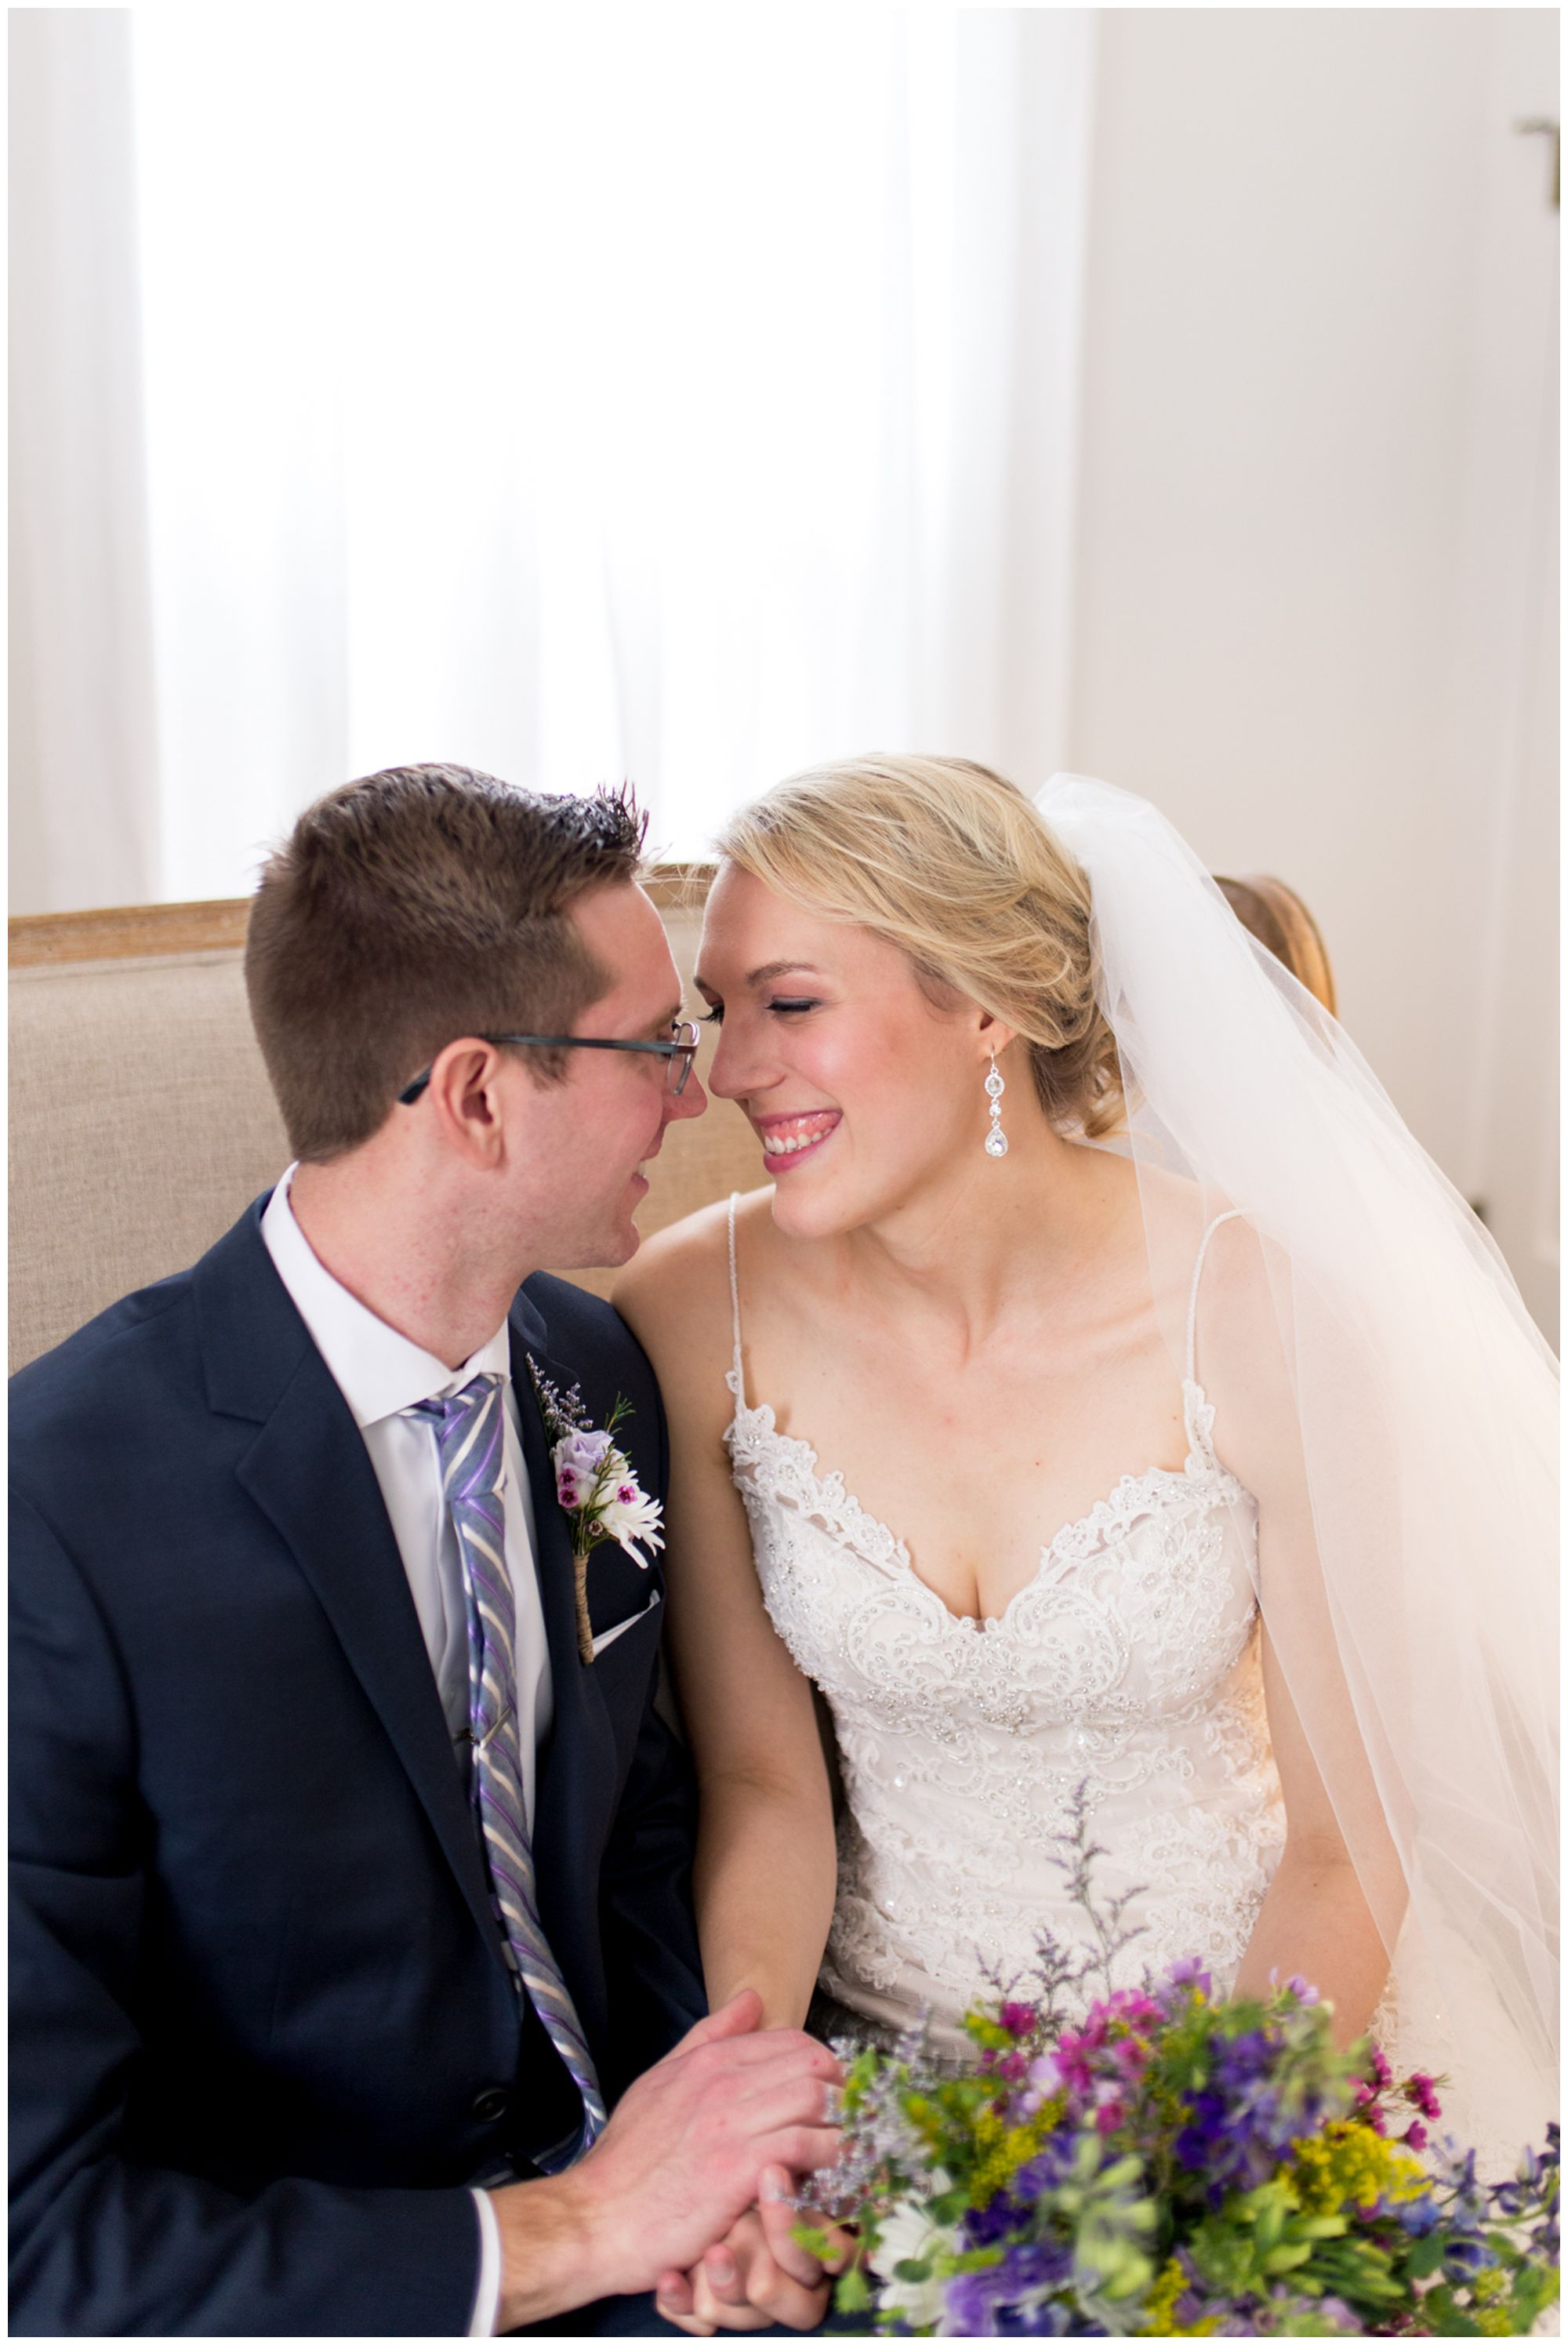 Metsker House bride and groom portraits at Mustard Seed Gardens wedding in Noblesville Indiana